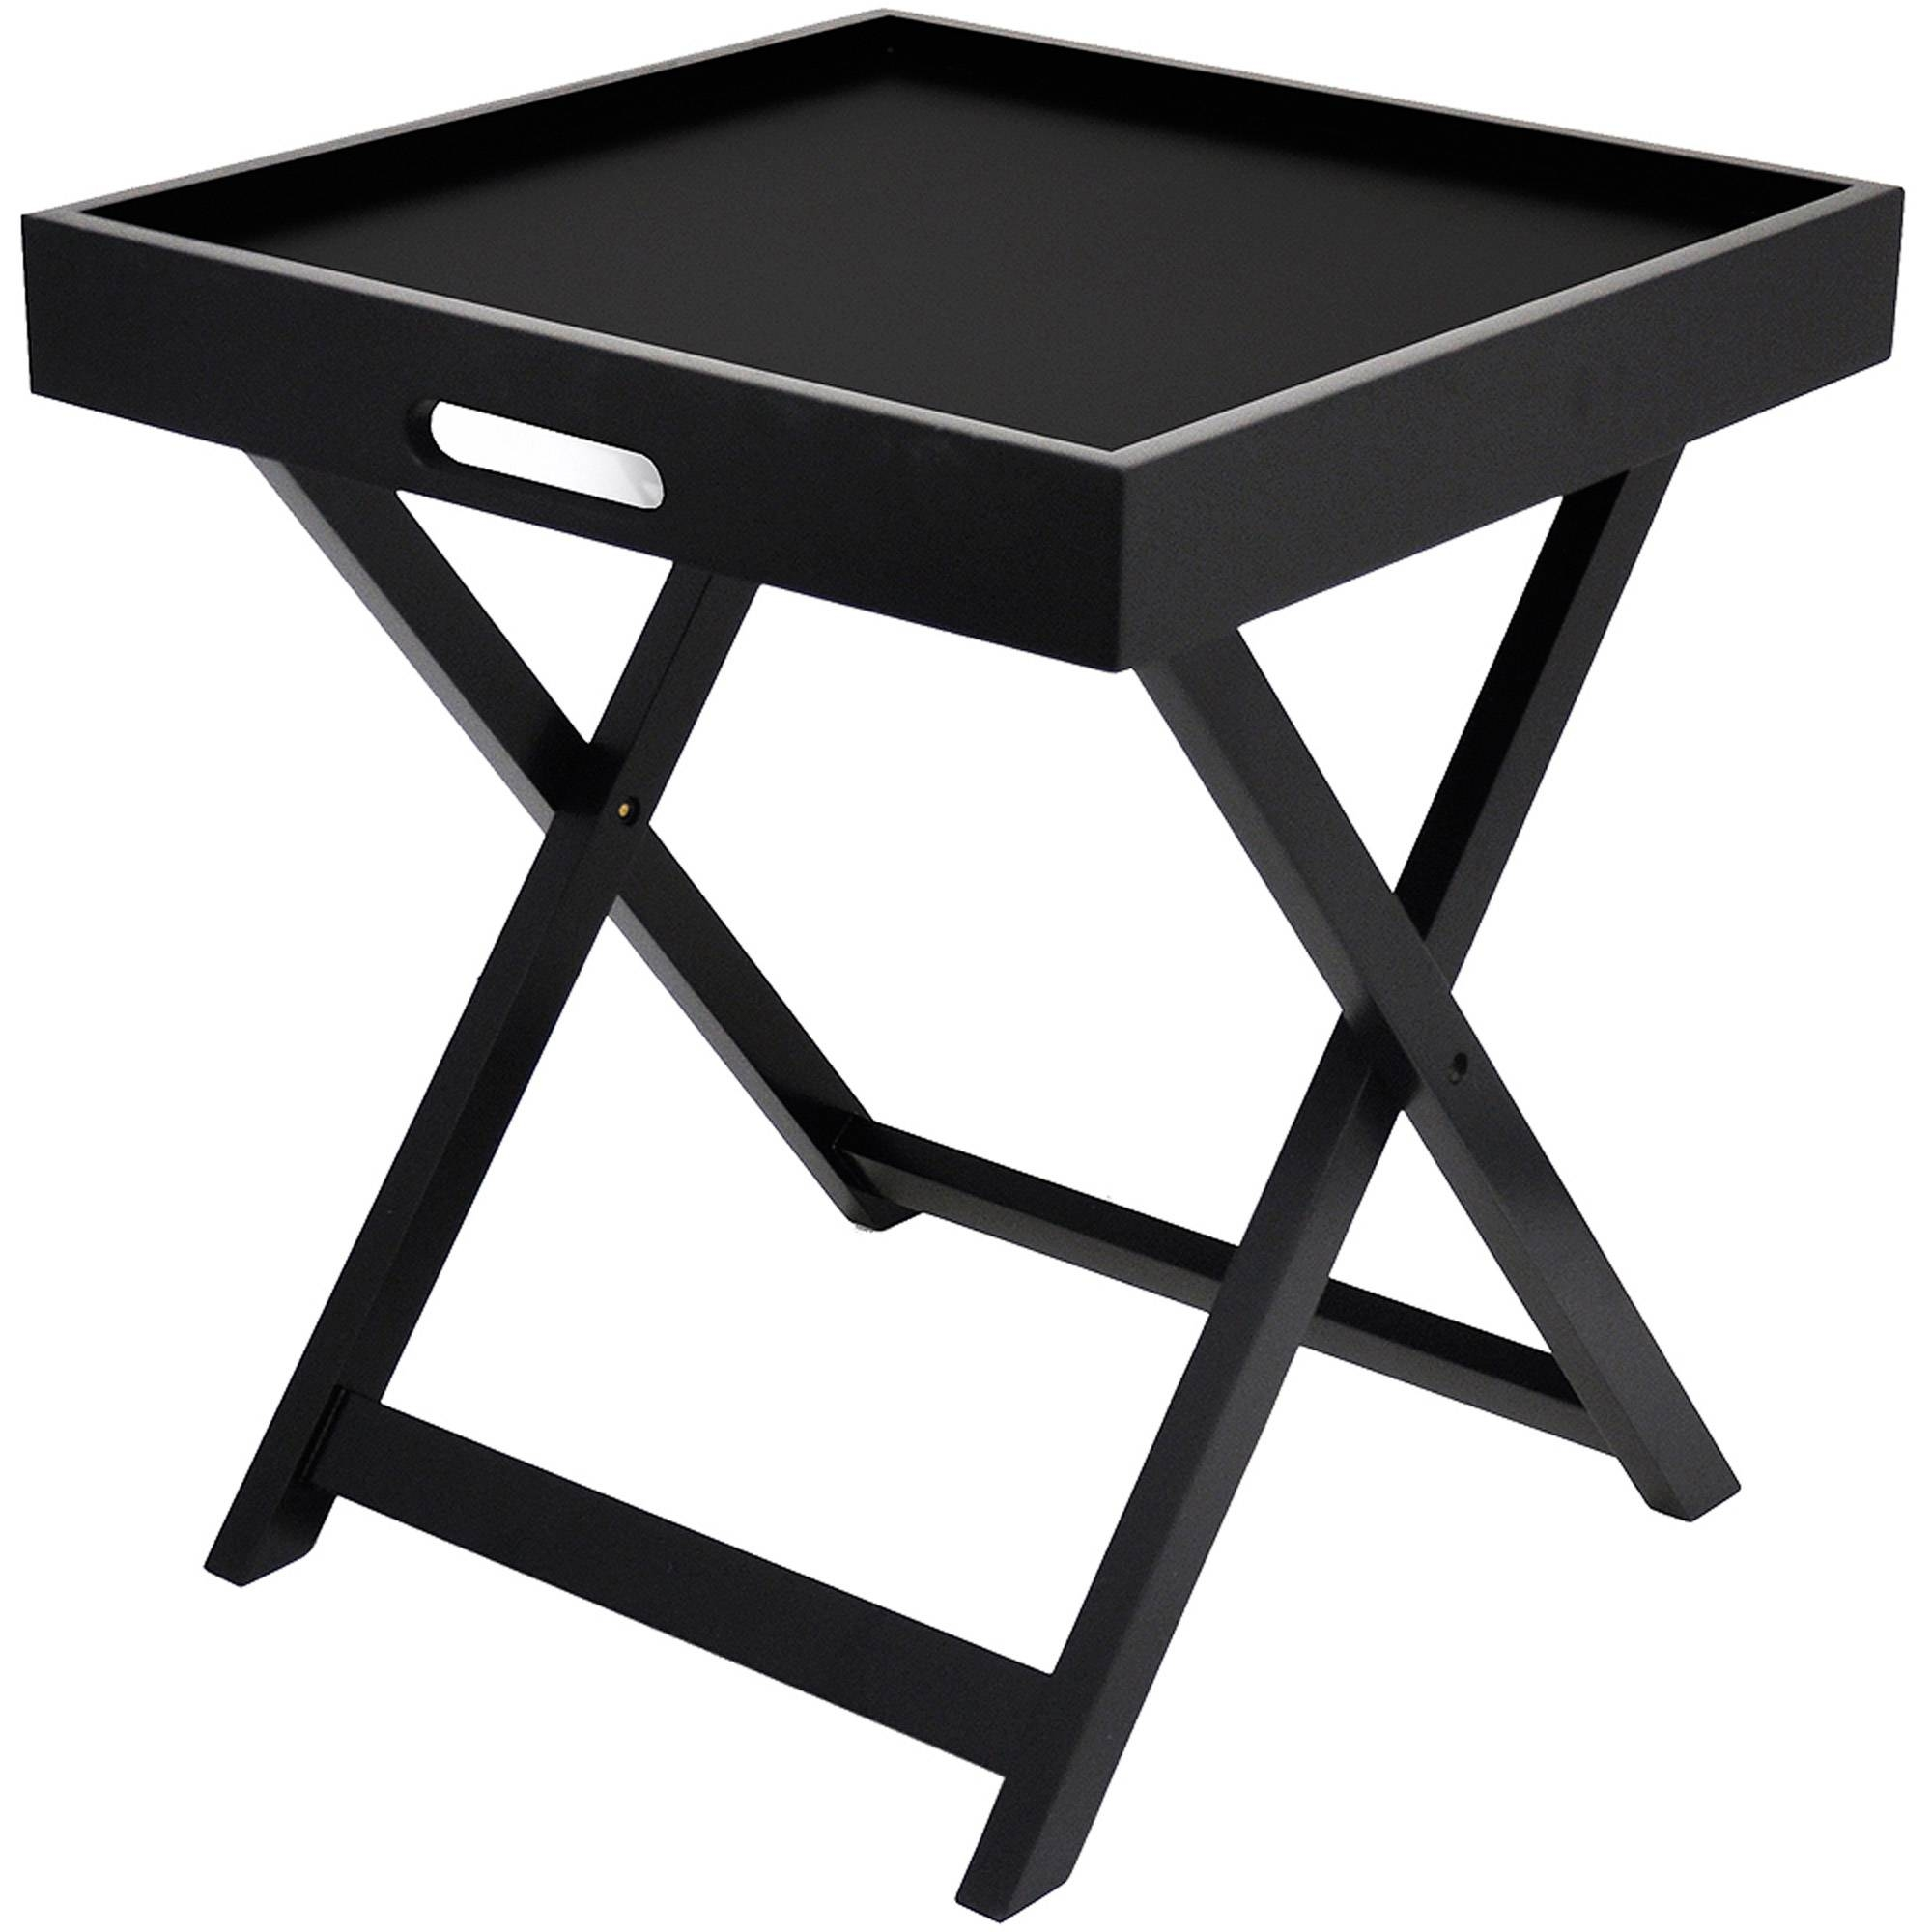 Tv Tray Tables - Walmart in Folding Tv Trays With Stand (Image 9 of 15)